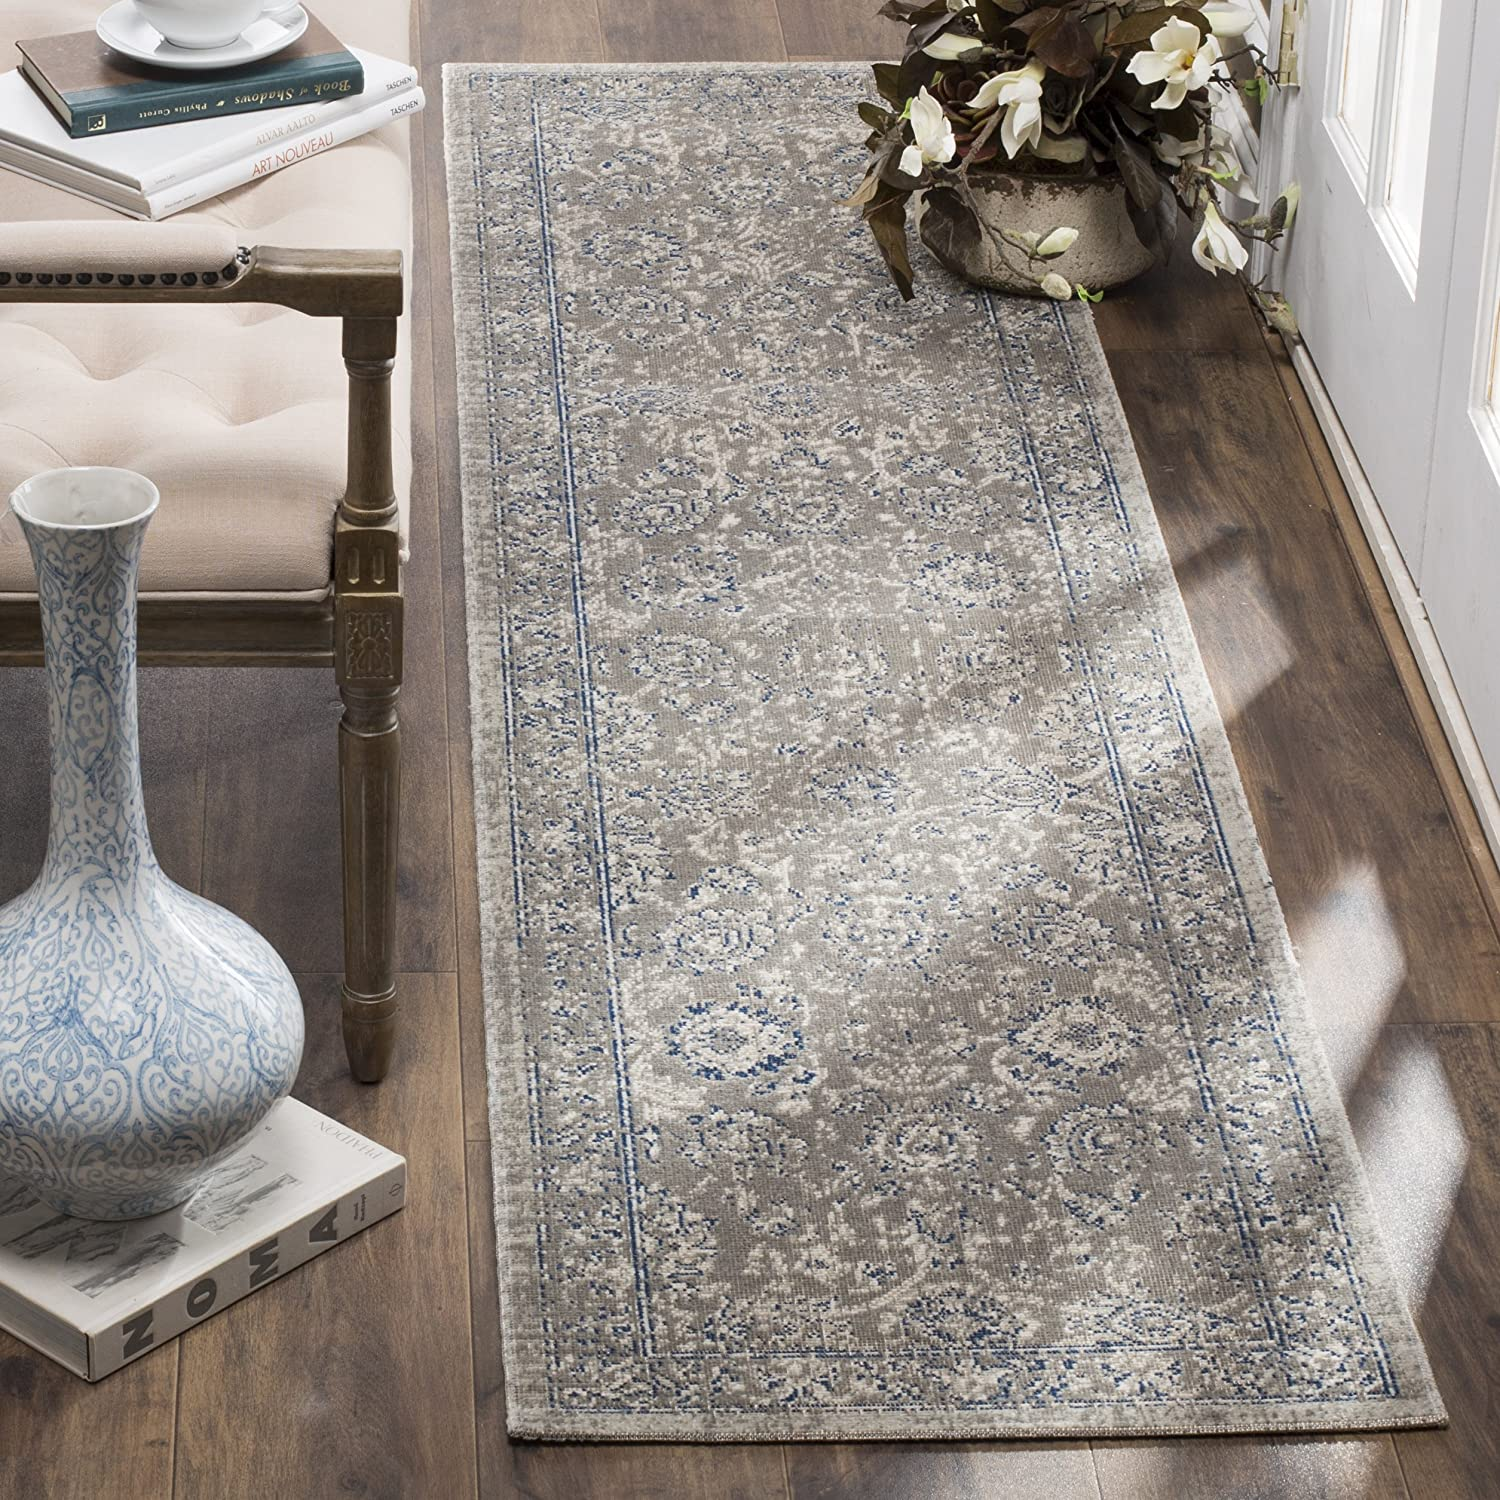 Amazon Com Safavieh Patina Collection Ptn316b Taupe And Blue Cotton Runner 2 2 X 8 Furniture Decor